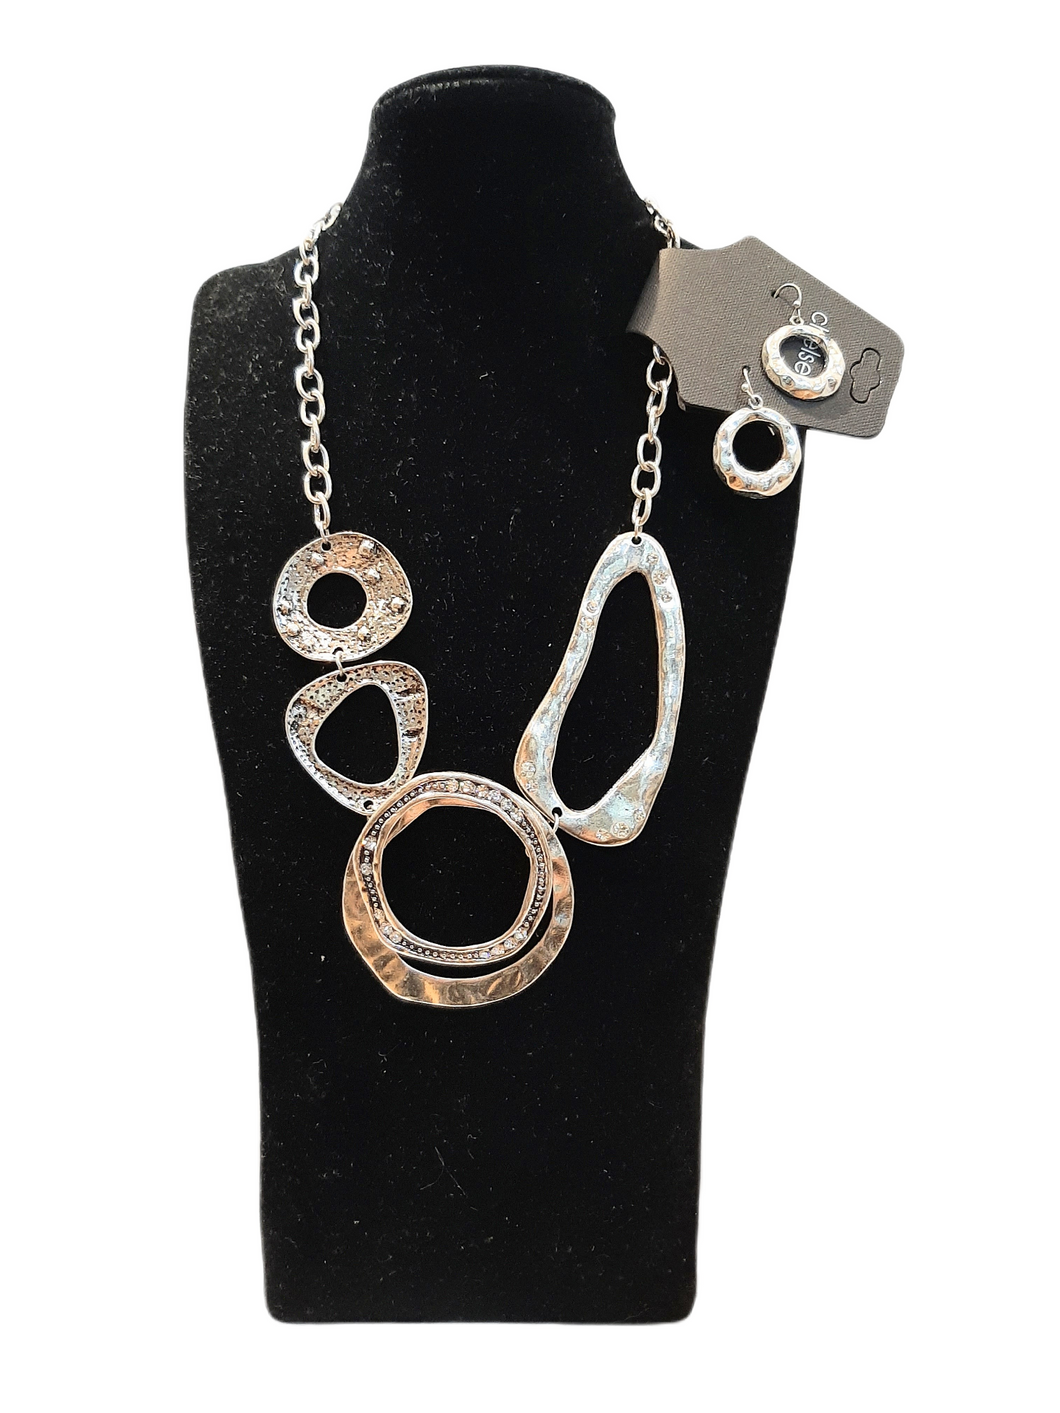 Stylish hammered silver tone necklace and earring set with crystal accents..  Nickel free.